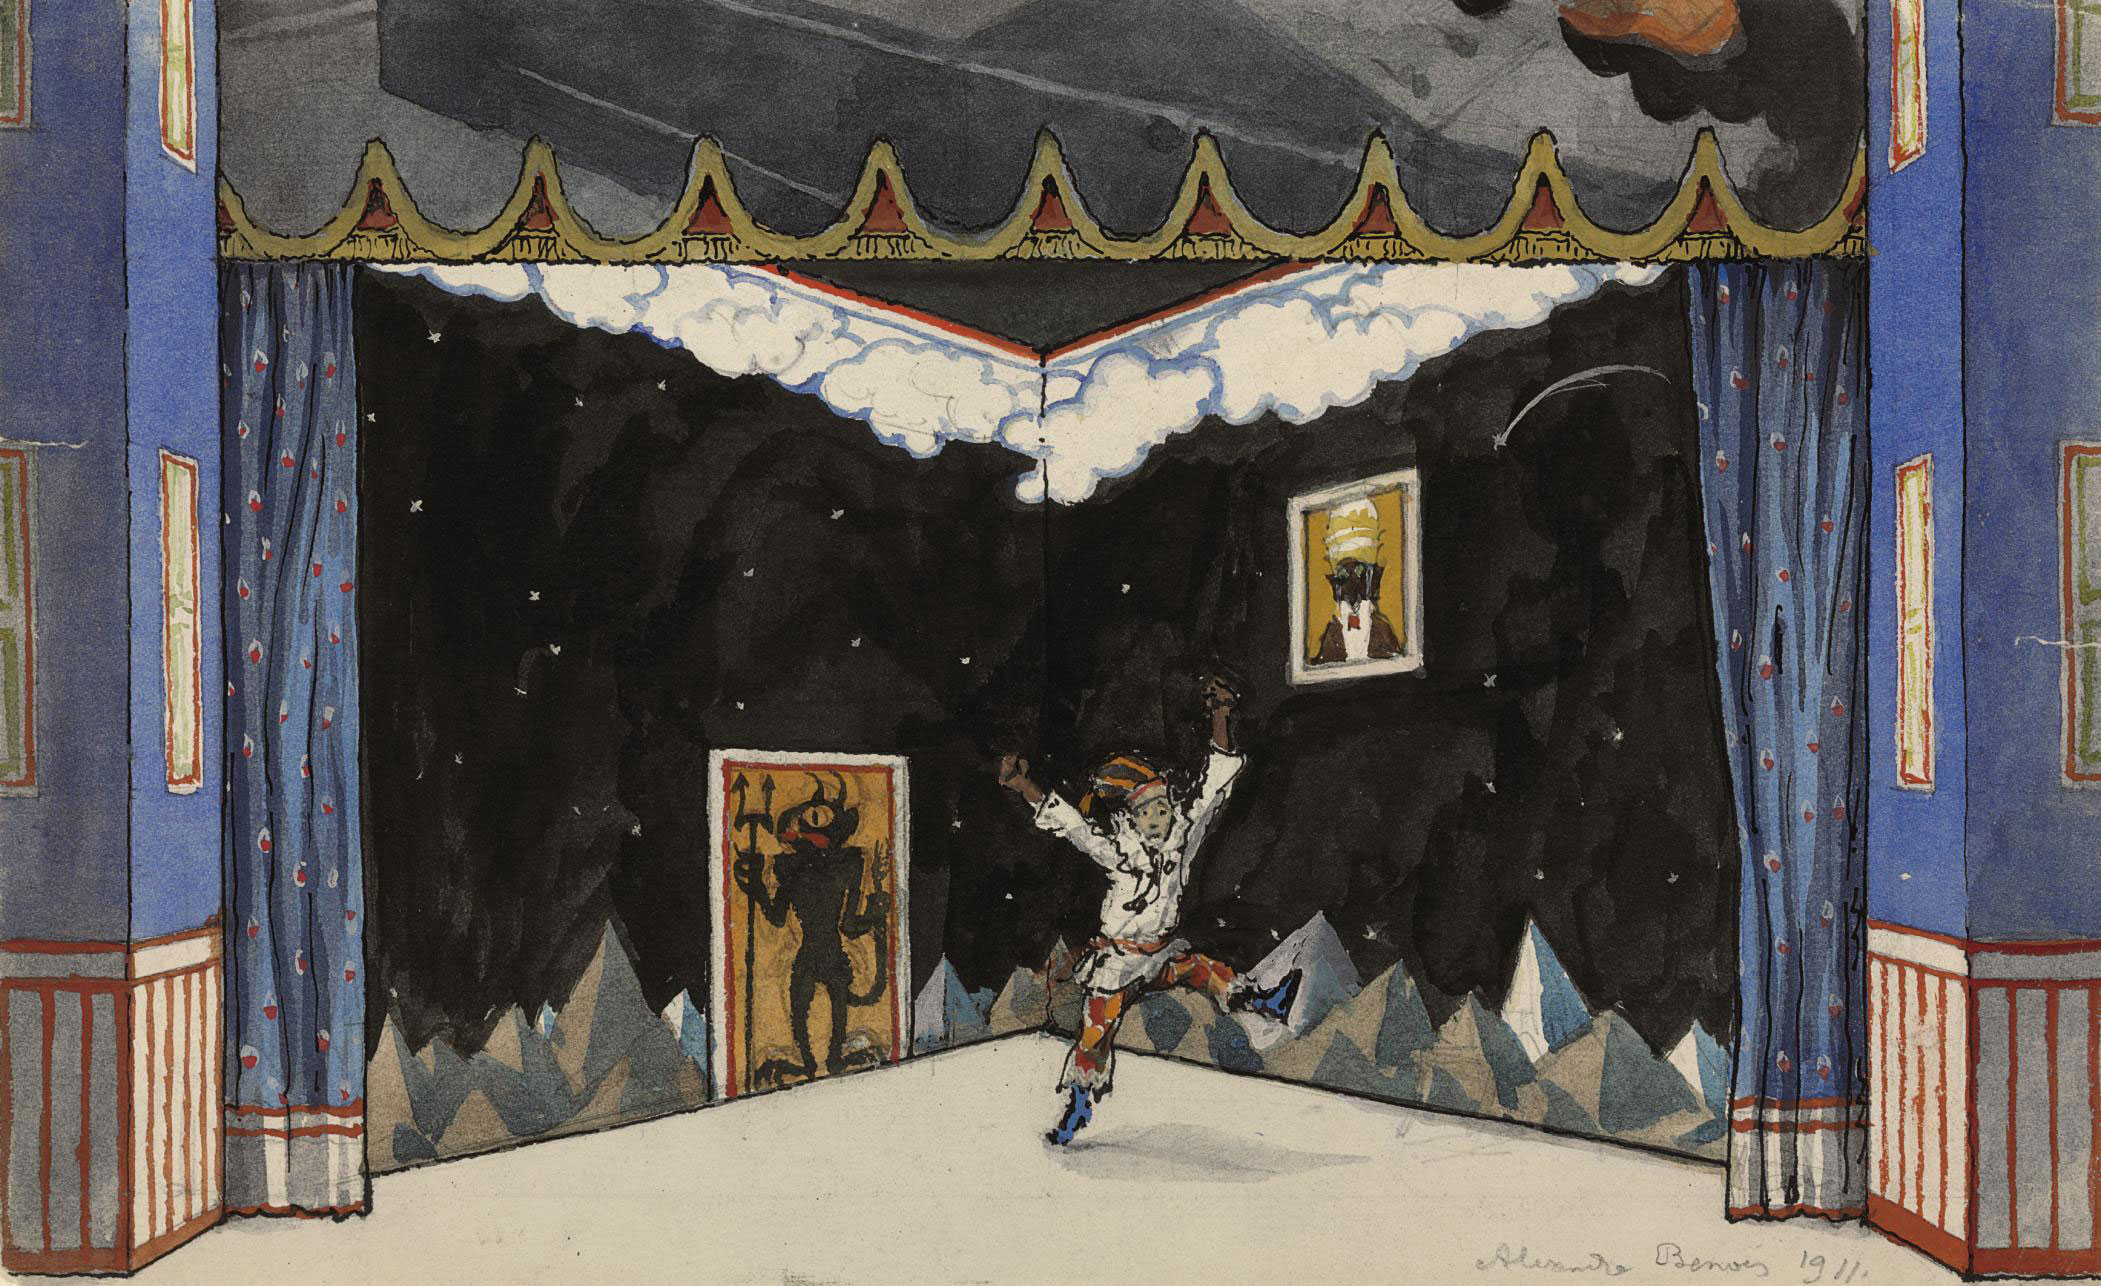 A set design for Petrushka: Scene II, Petrushka's room